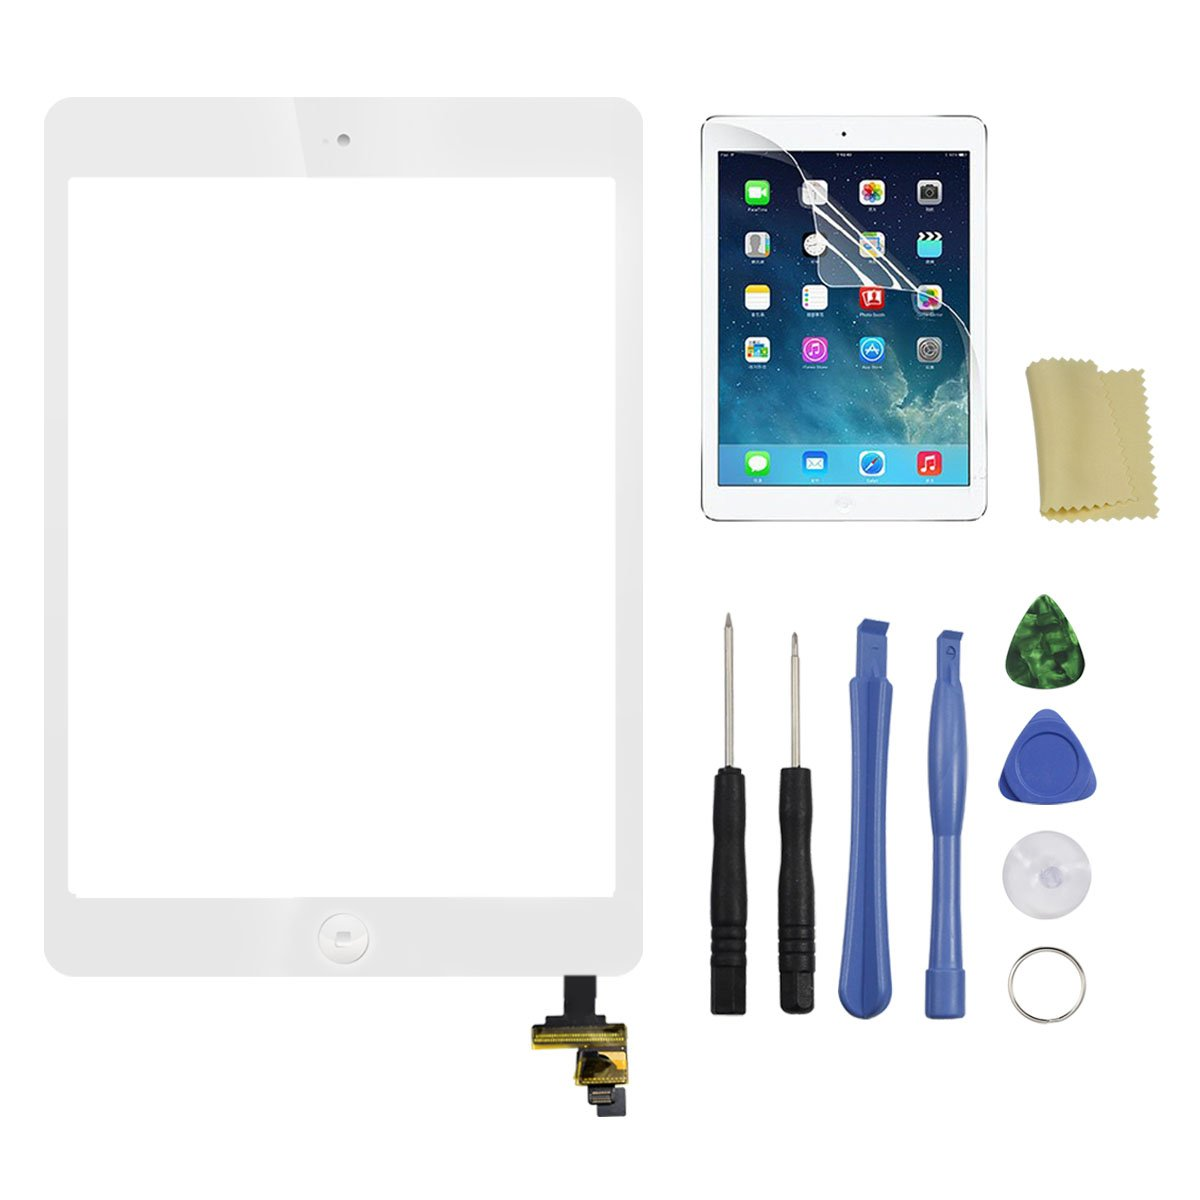 Touch Screen for iPad Mini 1 2 Retina(White),Front Screen Digitizer with IC Chip & Home Button and Camera Holder + 7 Pieces Tools + Adhesive Tape Pre-installed by Tongyin